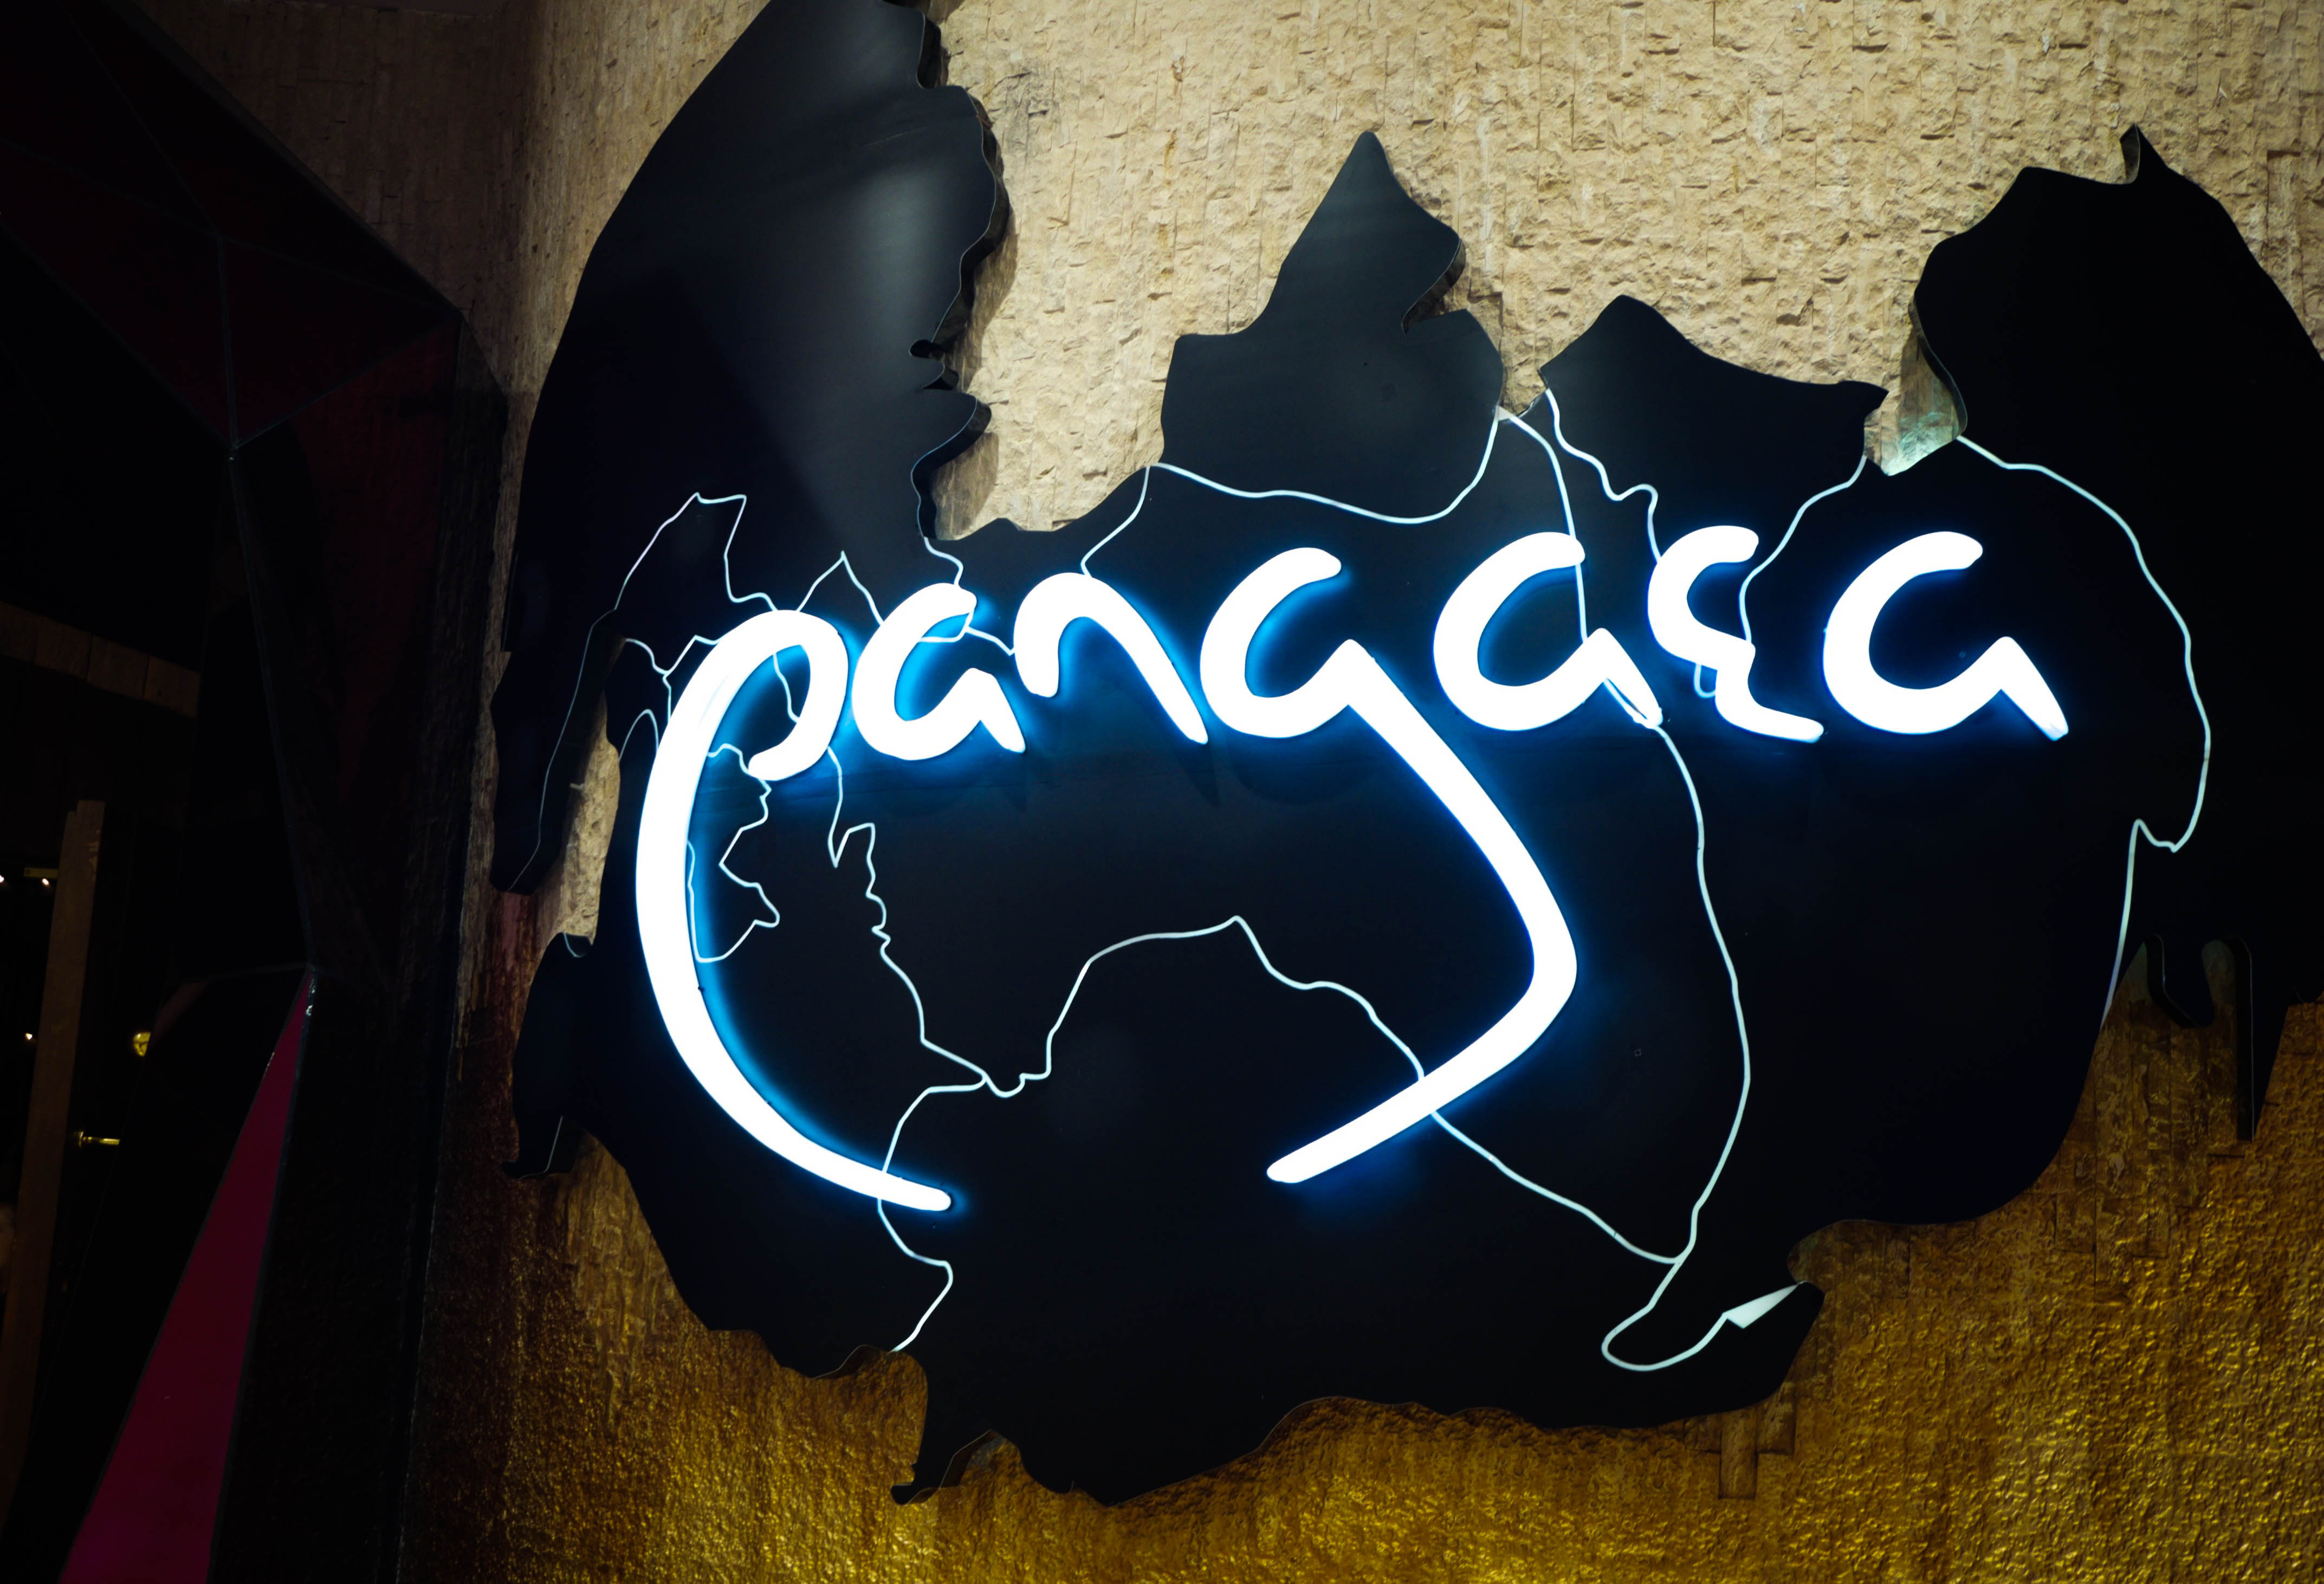 Pangaea – City of Dreams Manila